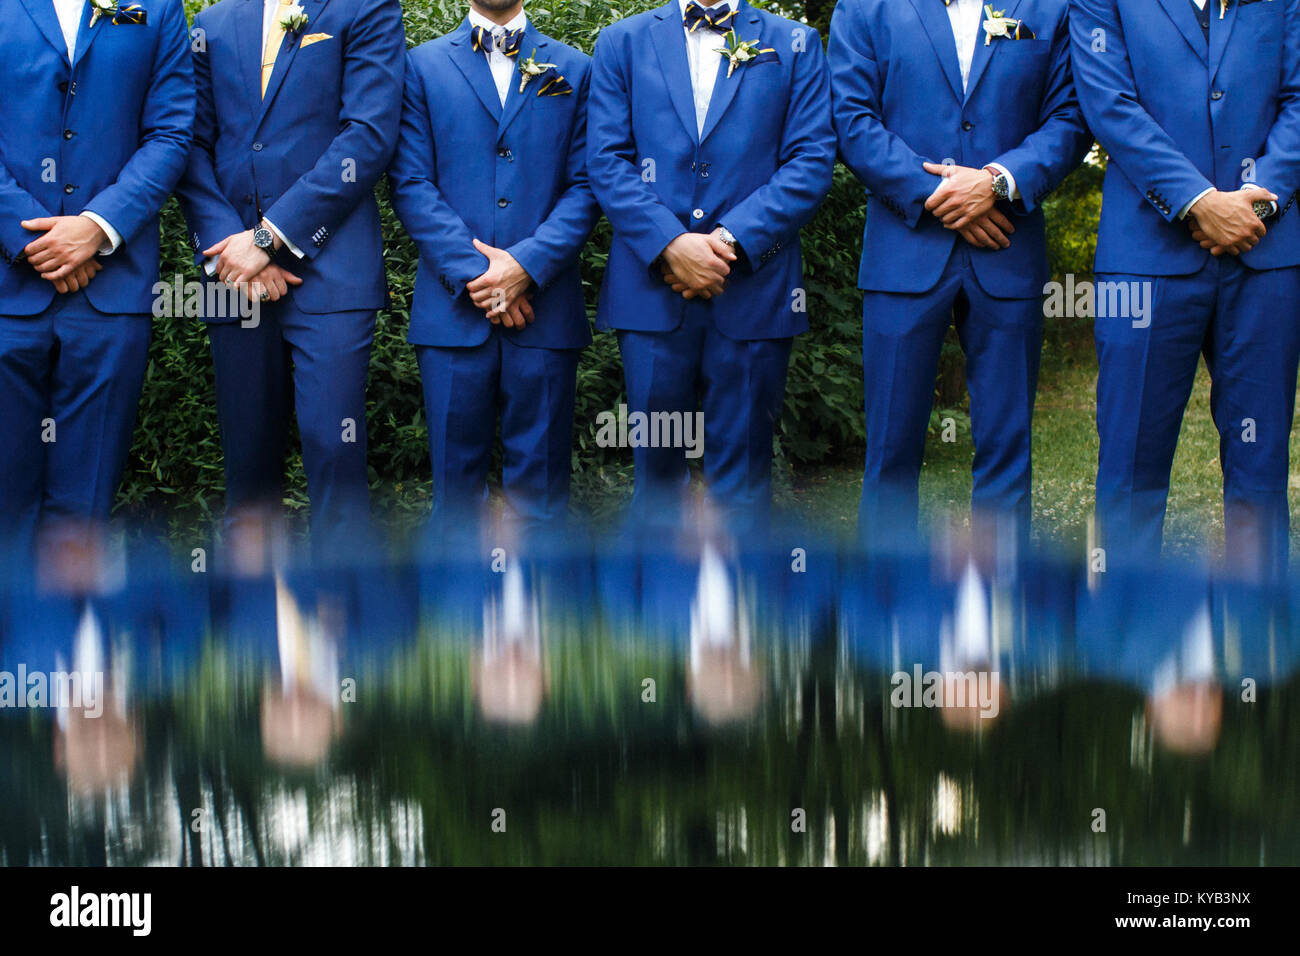 The groomsman in blue suits stand in a row. Stock Photo